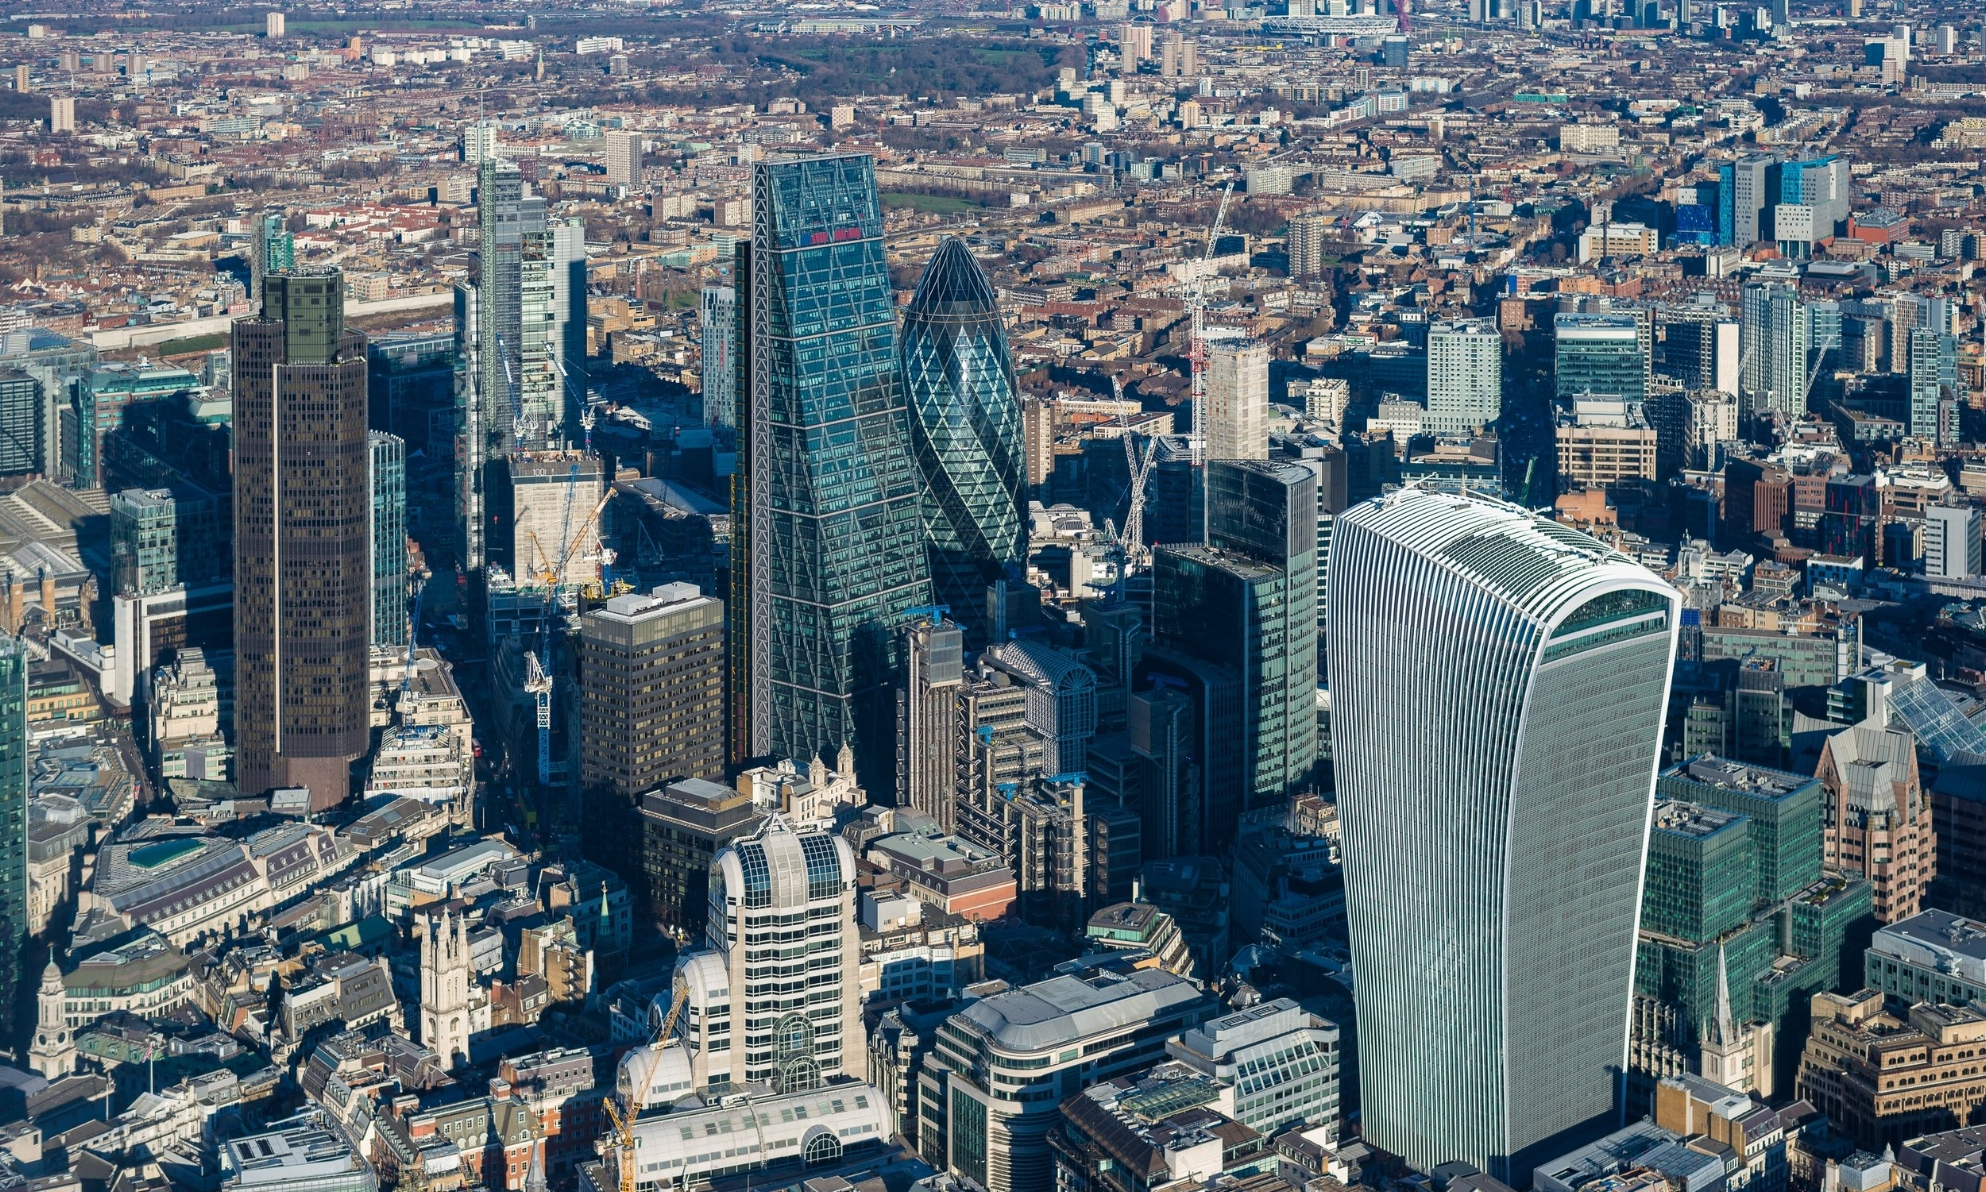 Canary Wharf Aerial View from Helicopter